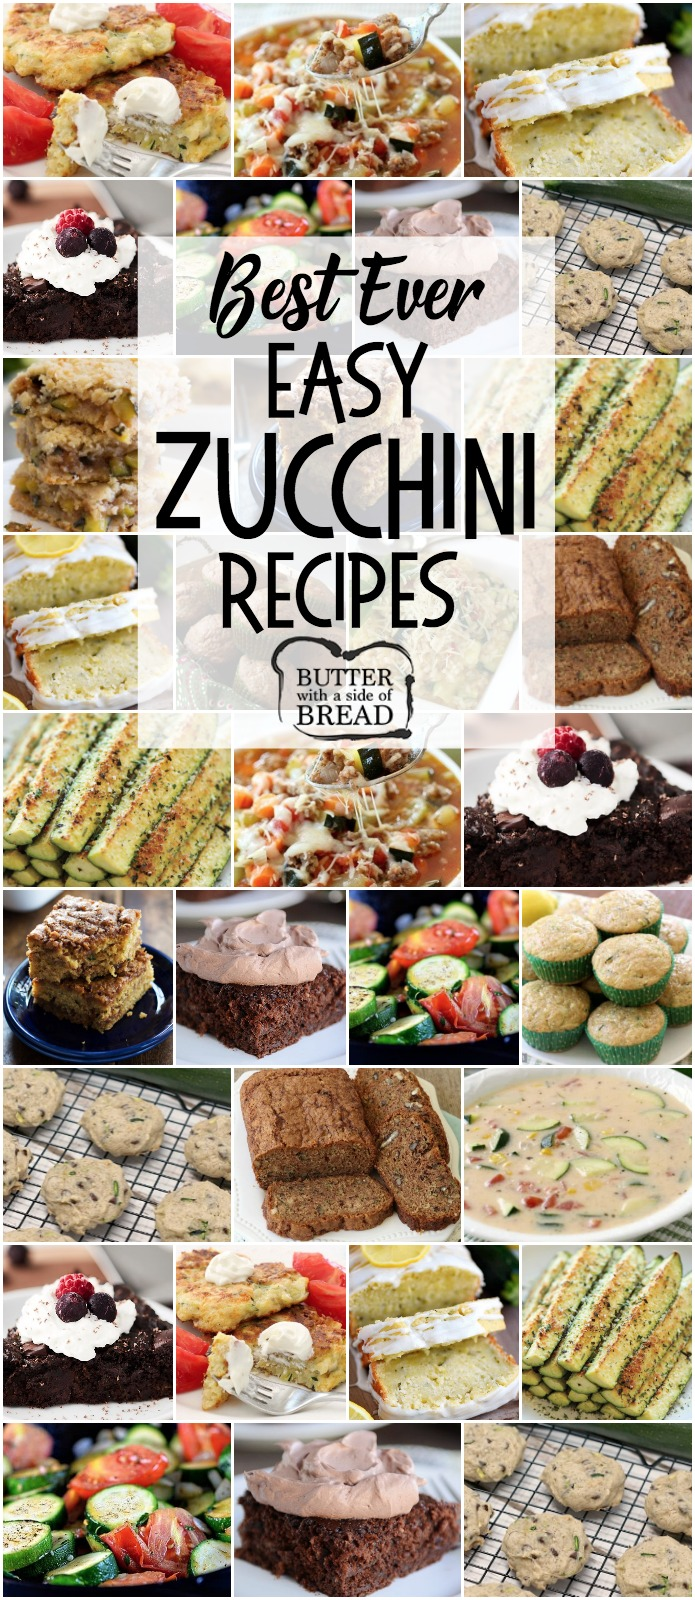 Easy Zucchini Recipes that everyone goes crazy over! Best Zucchini Bread, Zucchini Cookies, grilled zucchini and more. These are the best zucchini recipes for when your garden is overflowing! #Zucchini #recipes for #summer #garden #healthy #food from Butter With A Side of Bread